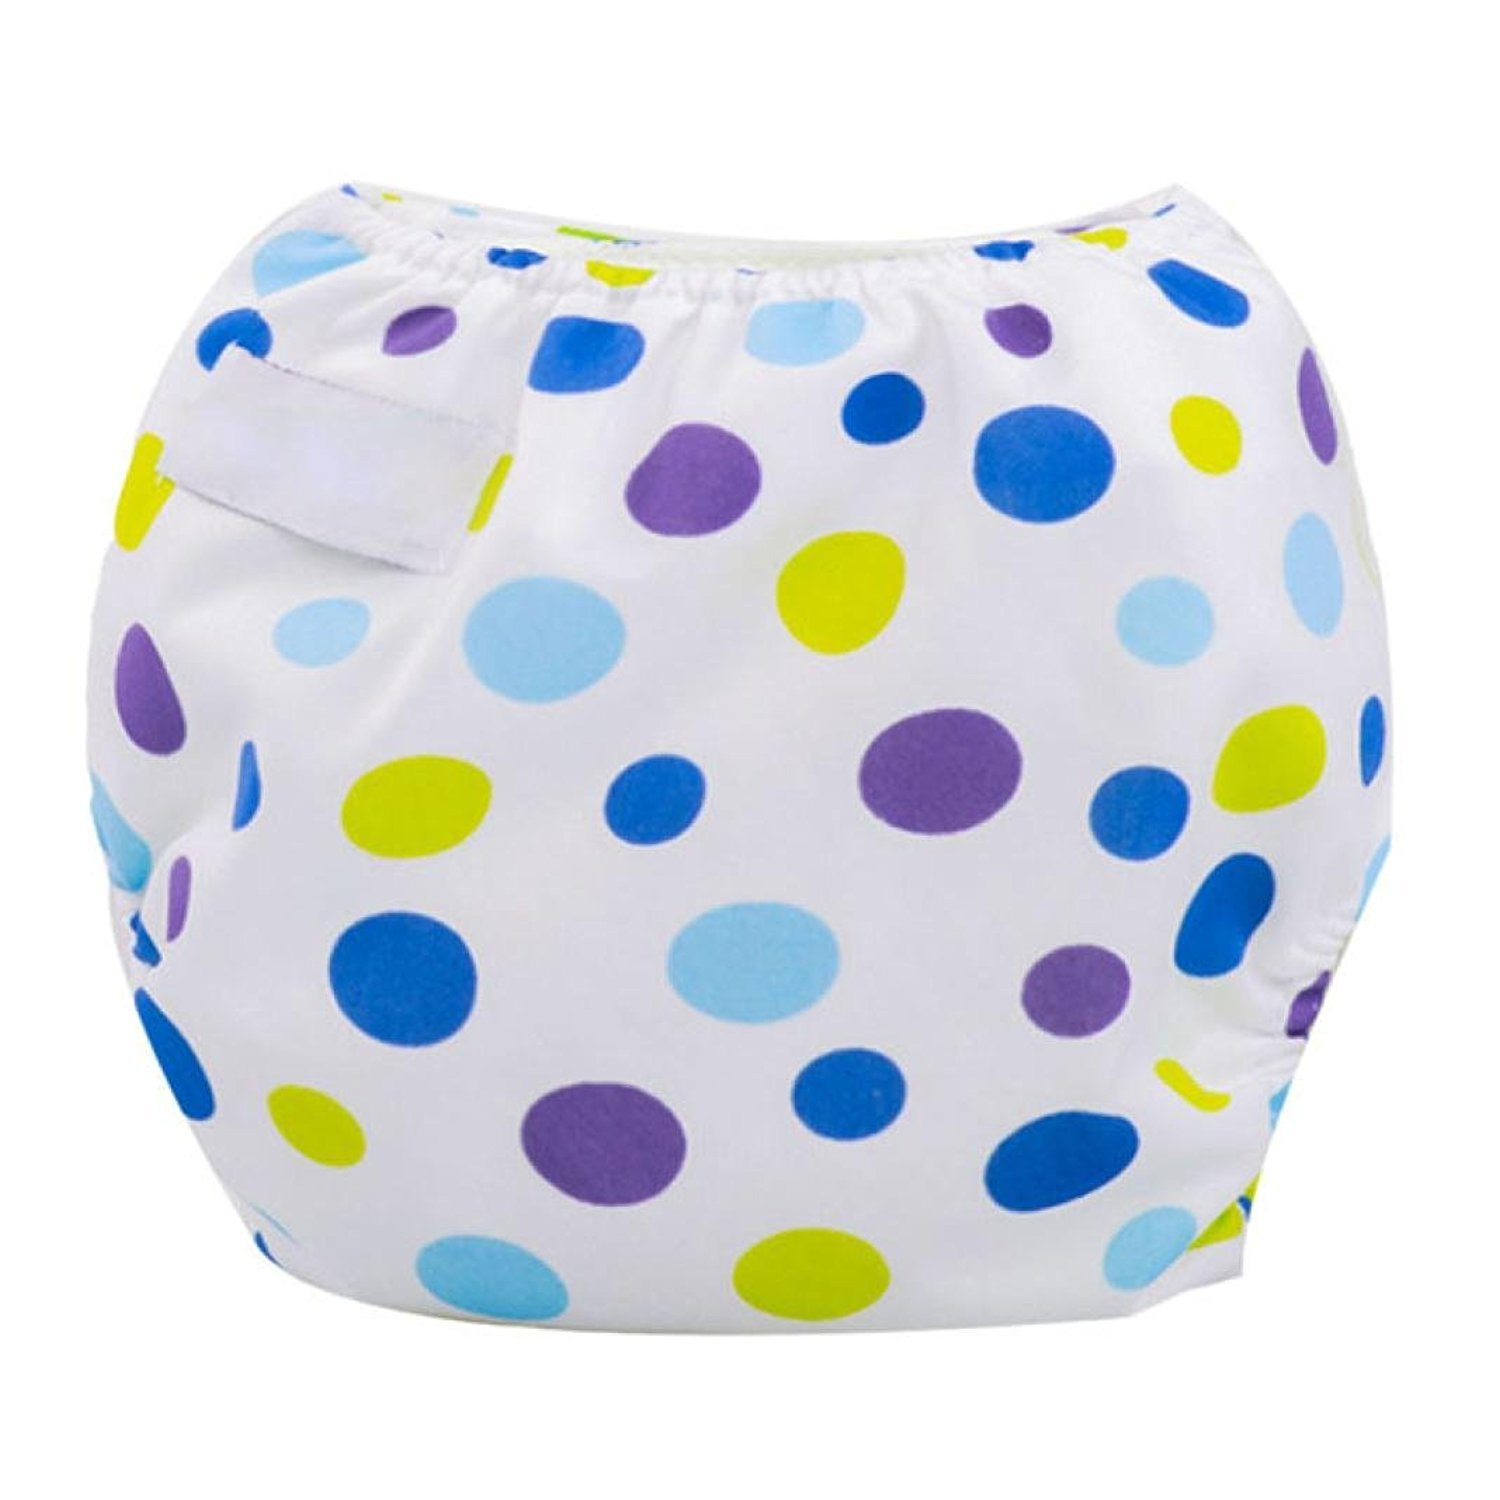 Fulltime(TM) Newborn Baby Summer Cloth Diaper Cover Adjustable Reusable Washable Nappy F-1406